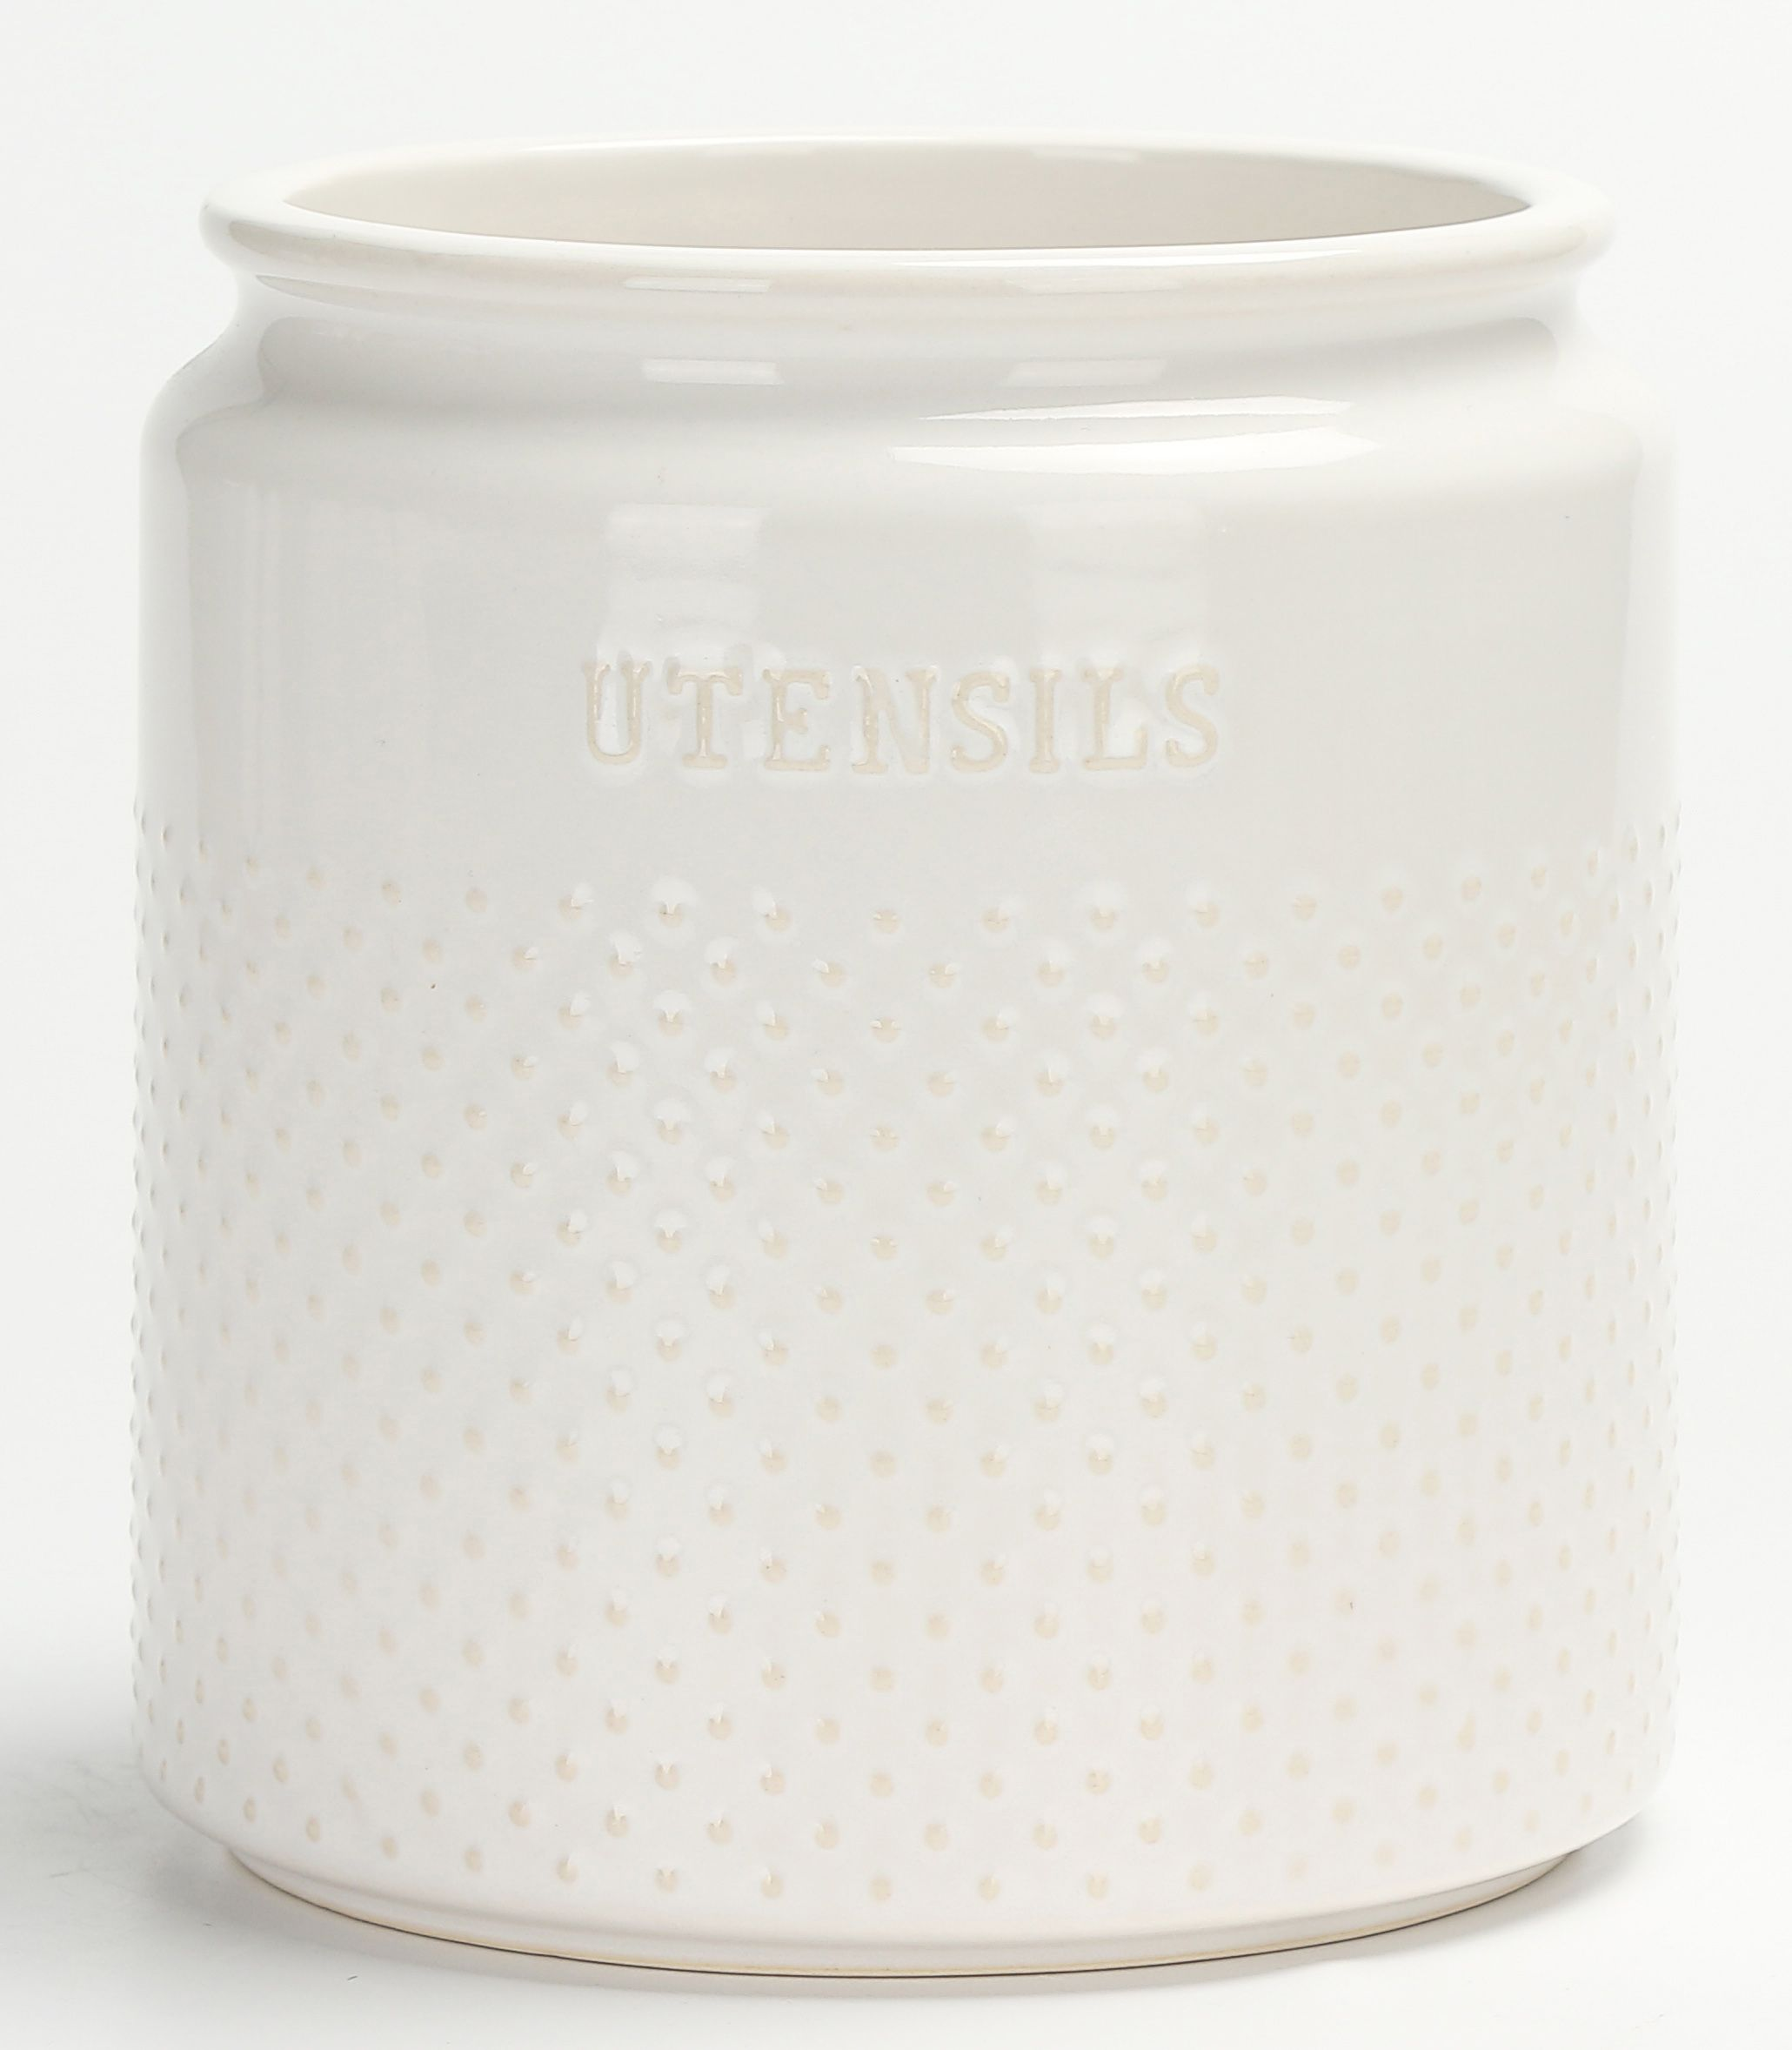 57a10ce000943c5f28833b2a2b0e46a9 - Better Homes & Gardens Ceramic Hobnail Canister Small